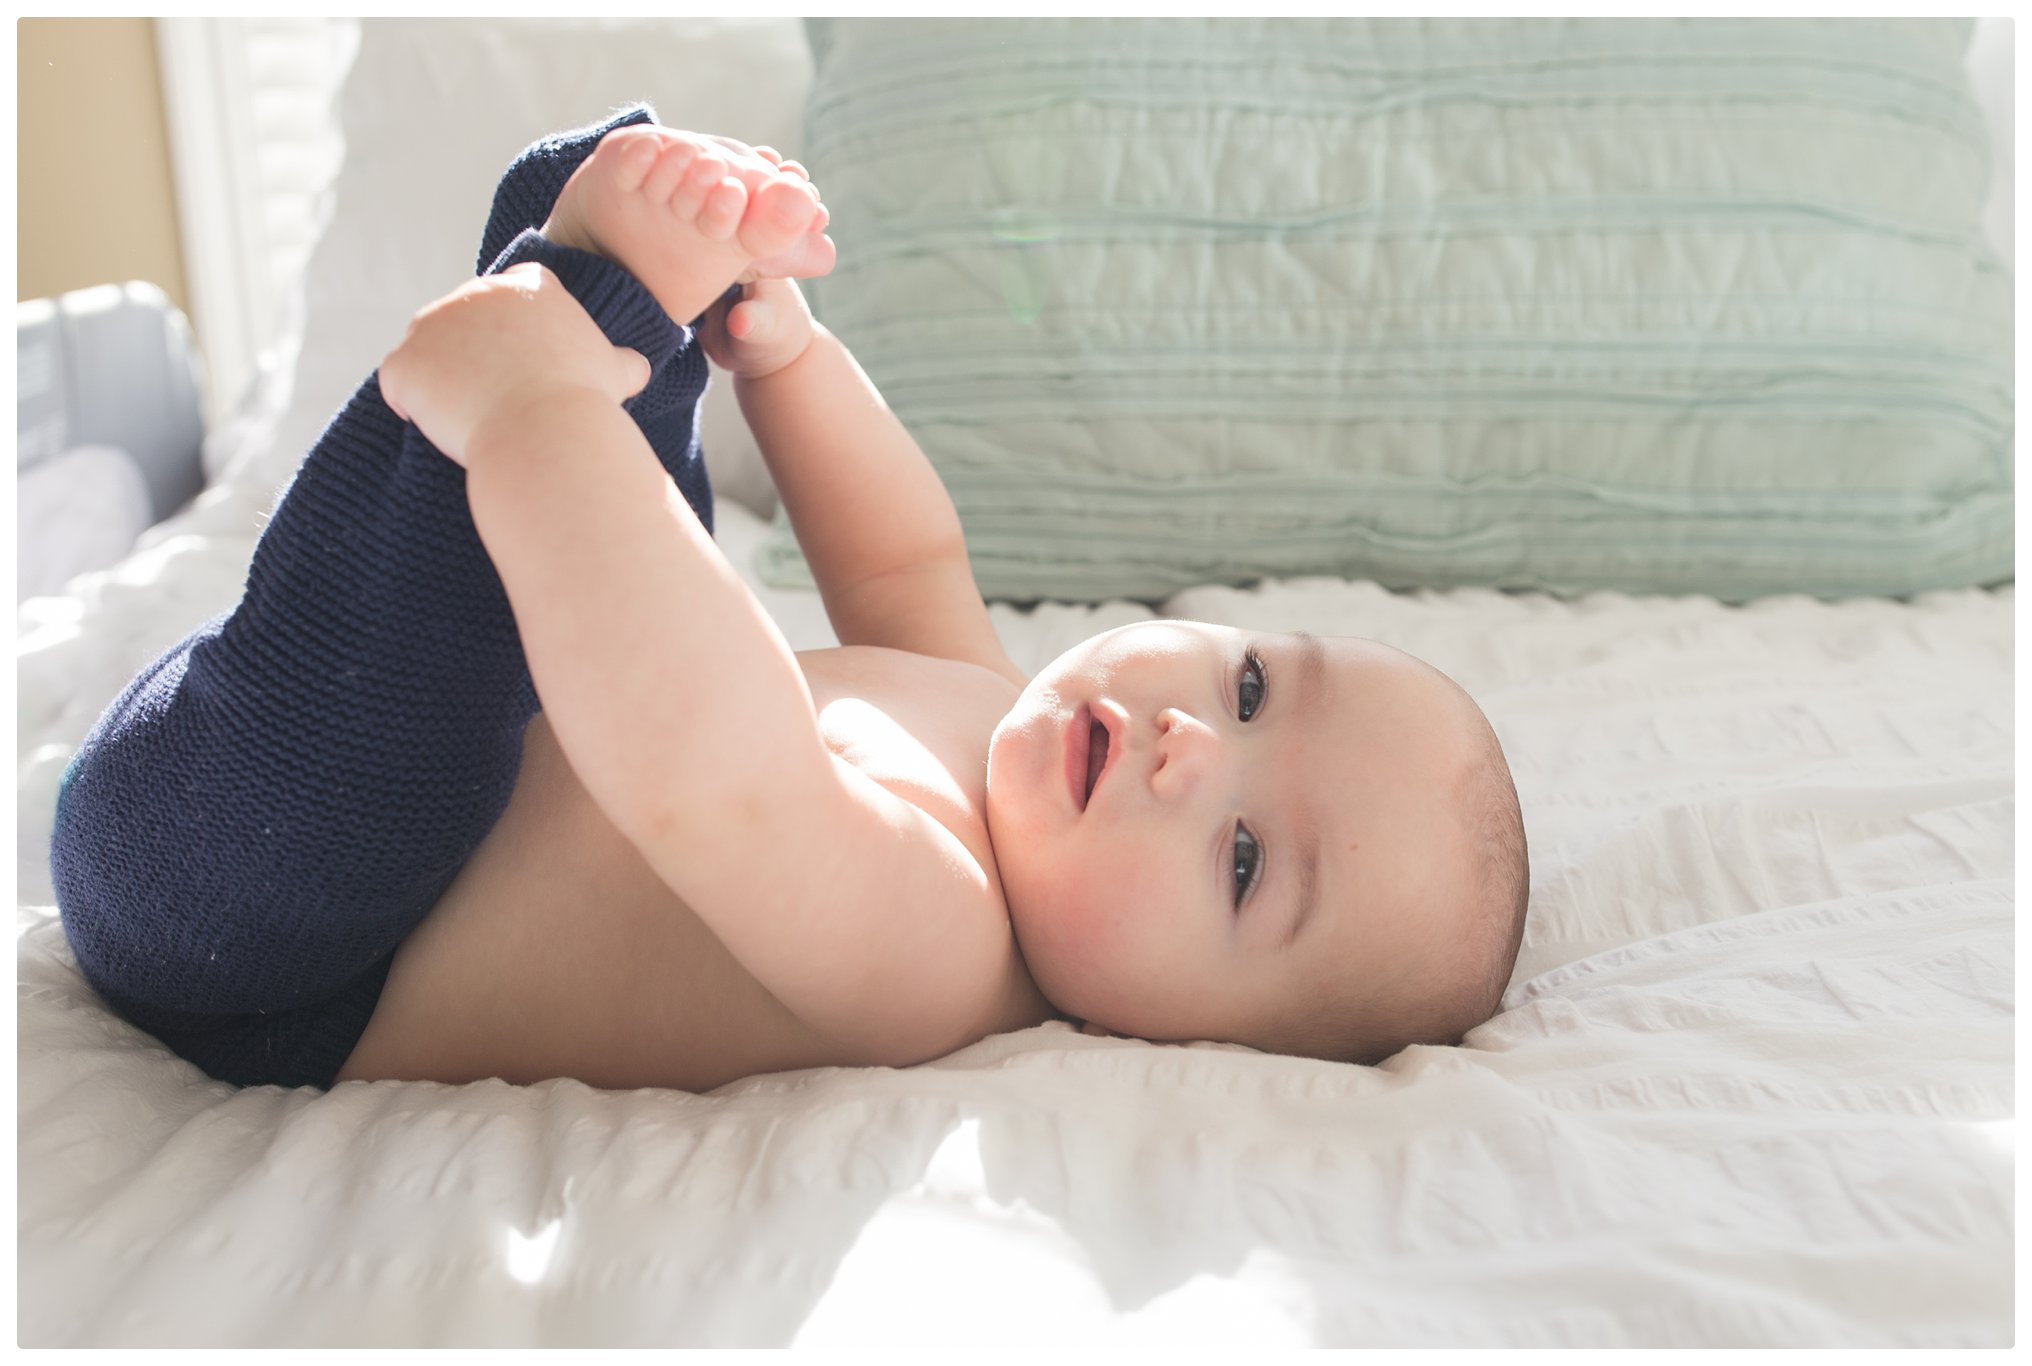 Six month old laying on bed holding his feet during relaxed Lifestyle session in Massachusetts